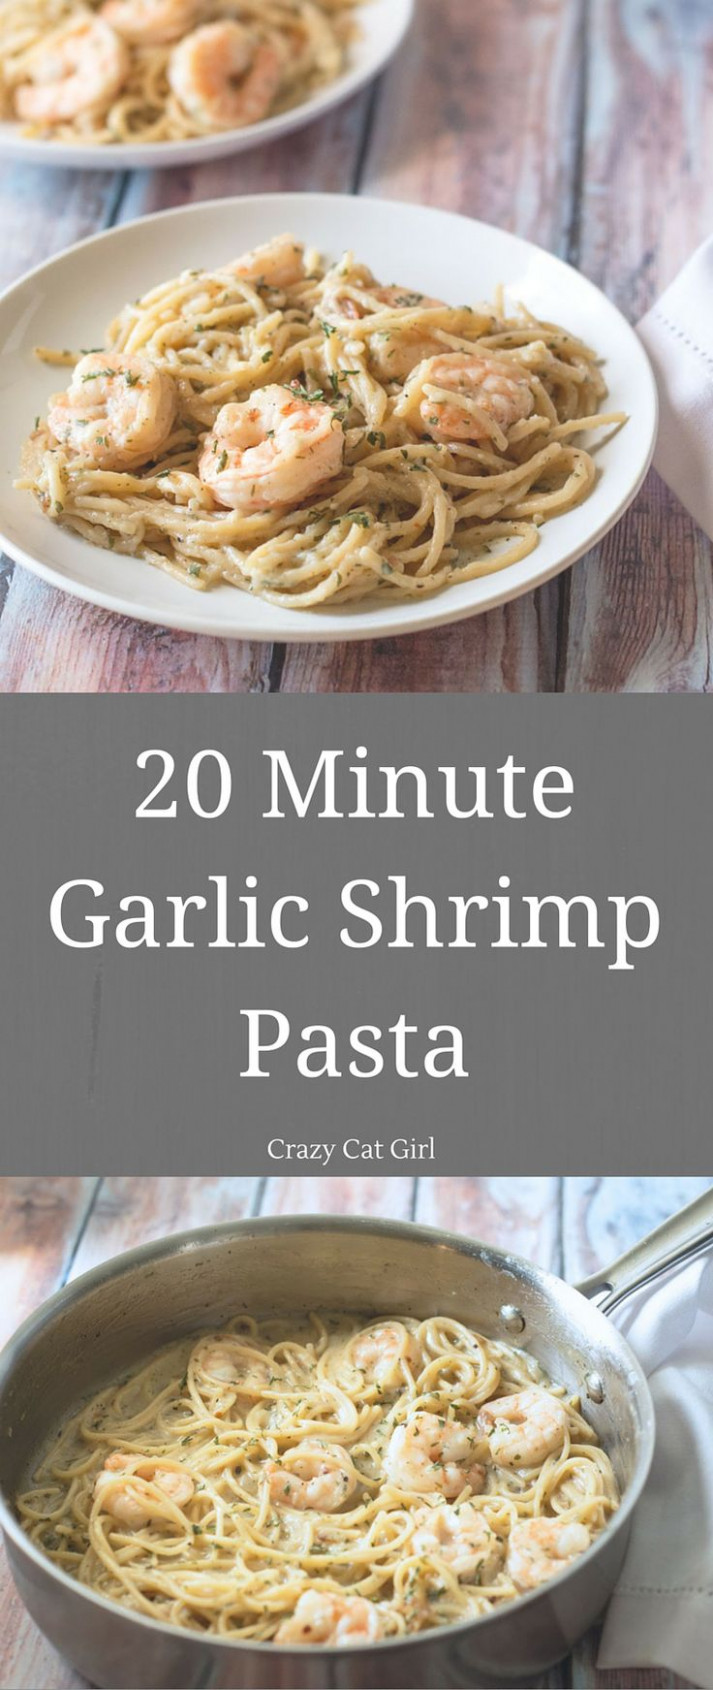 17 Best ideas about Garlic Shrimp Pasta on Pinterest ...